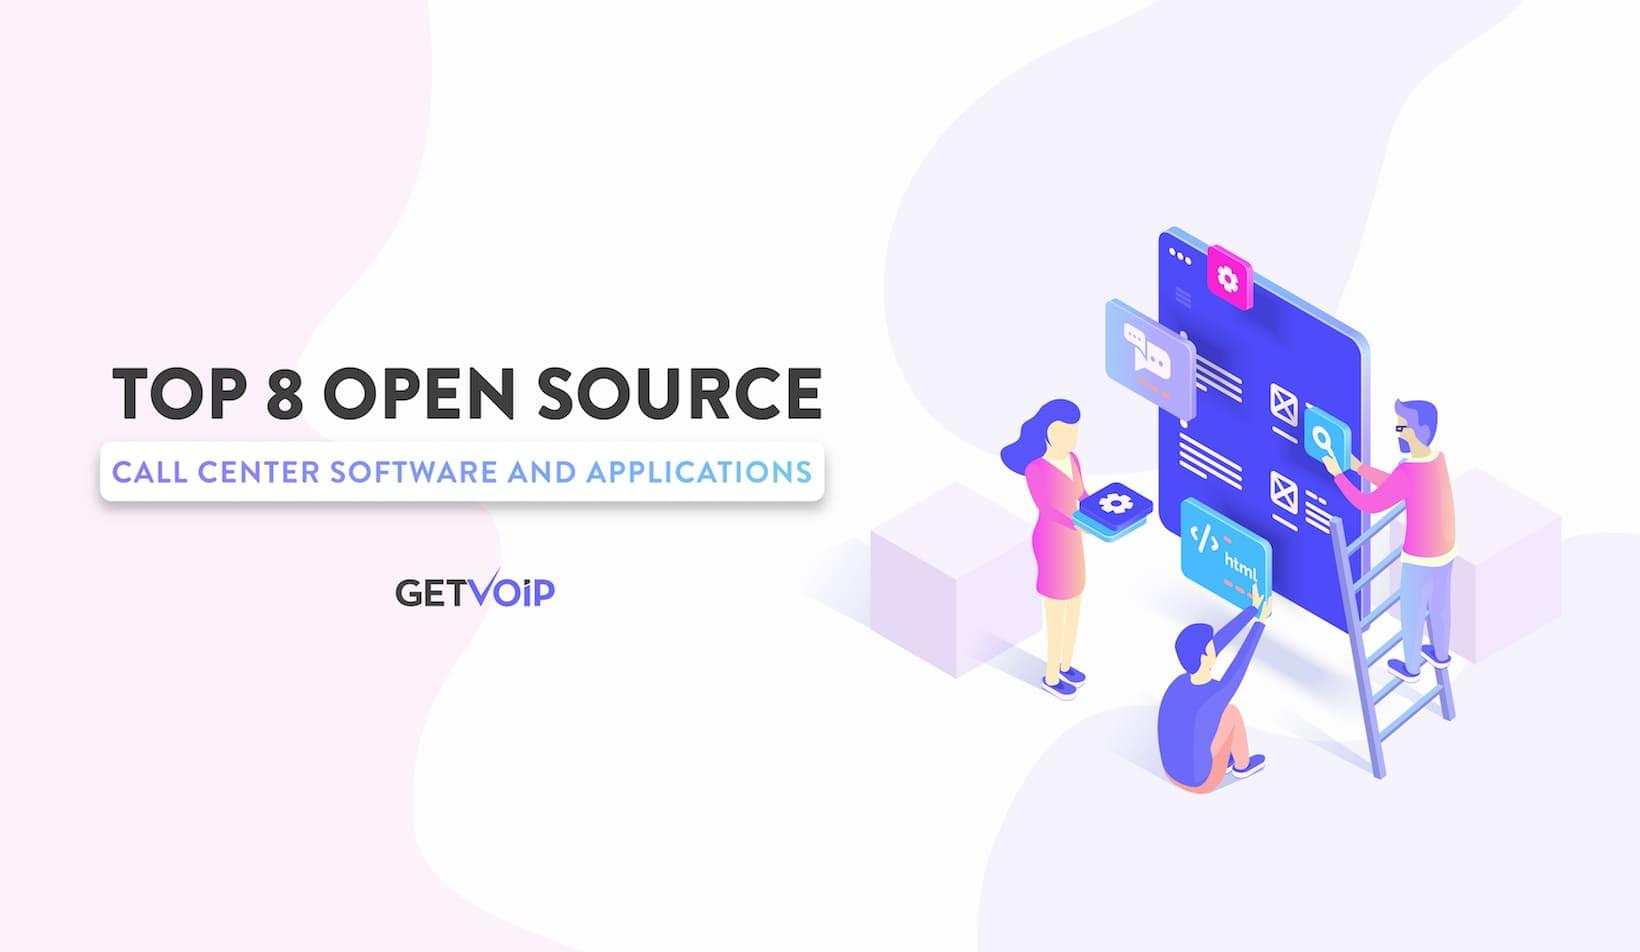 Top 8 Open Source Call Center Software and Applications | GetVoIP